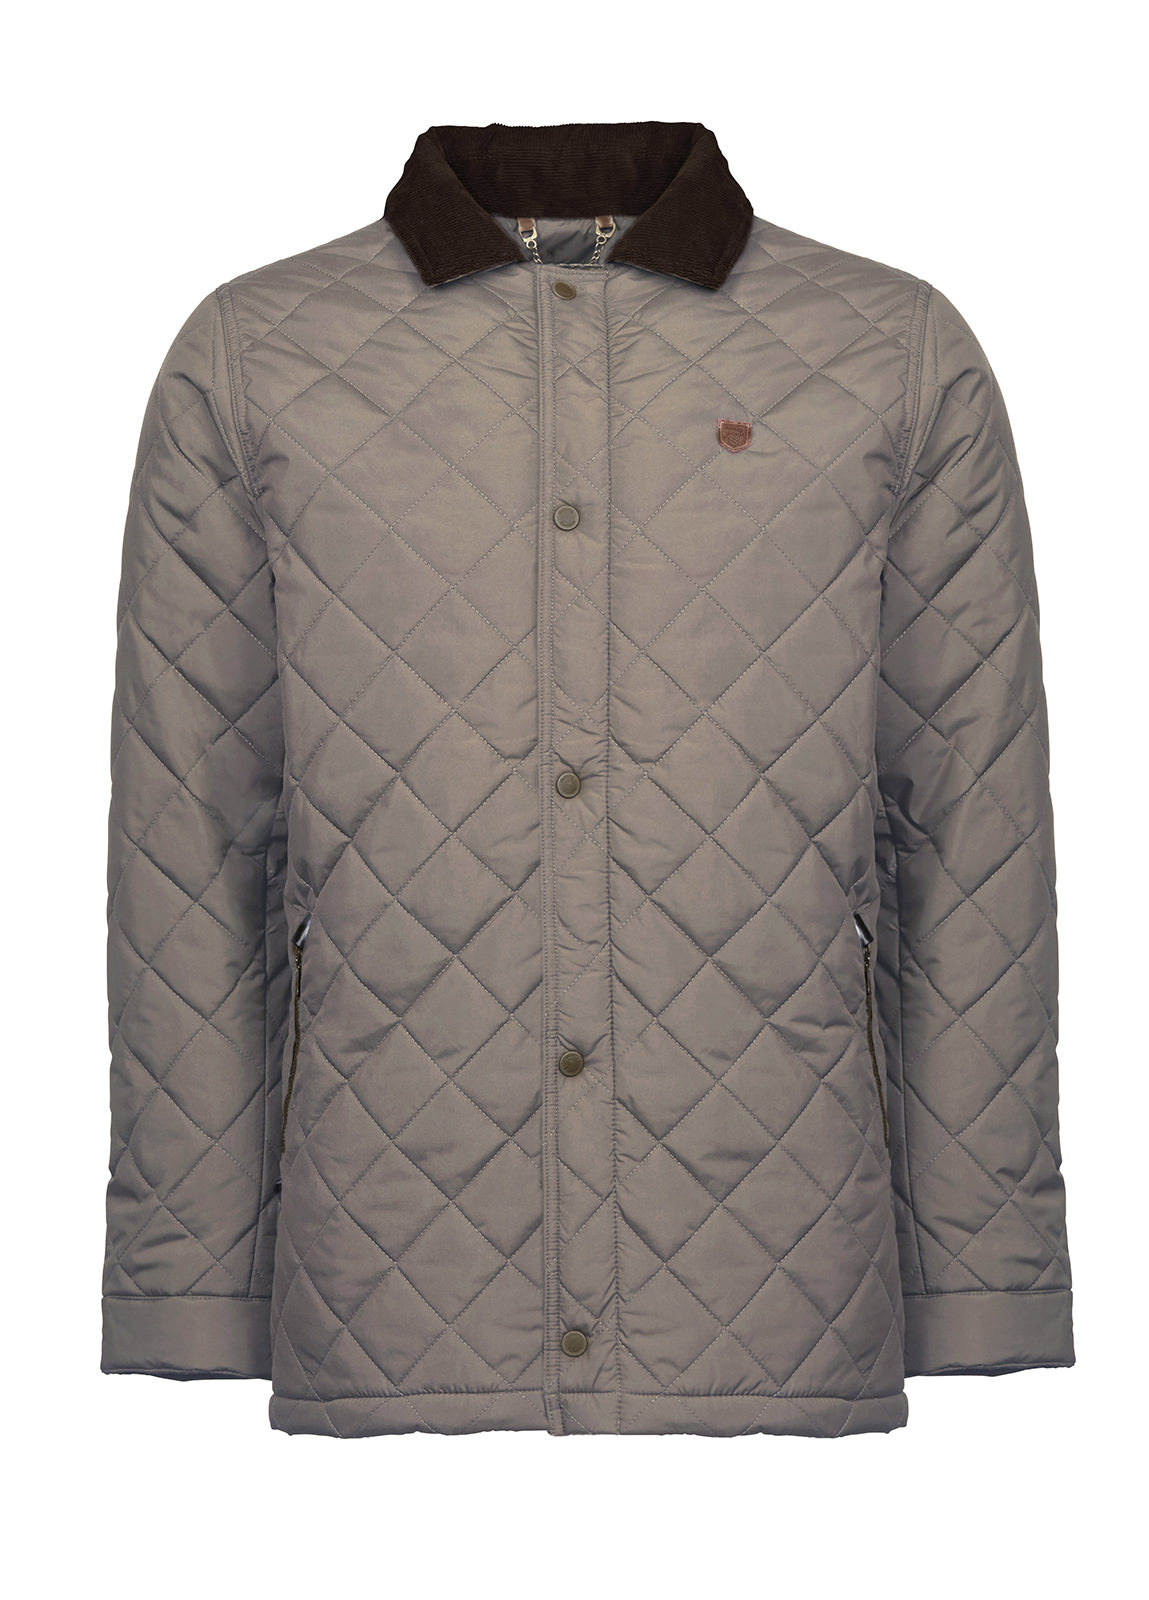 Clonard Men's Jacket - Taupe